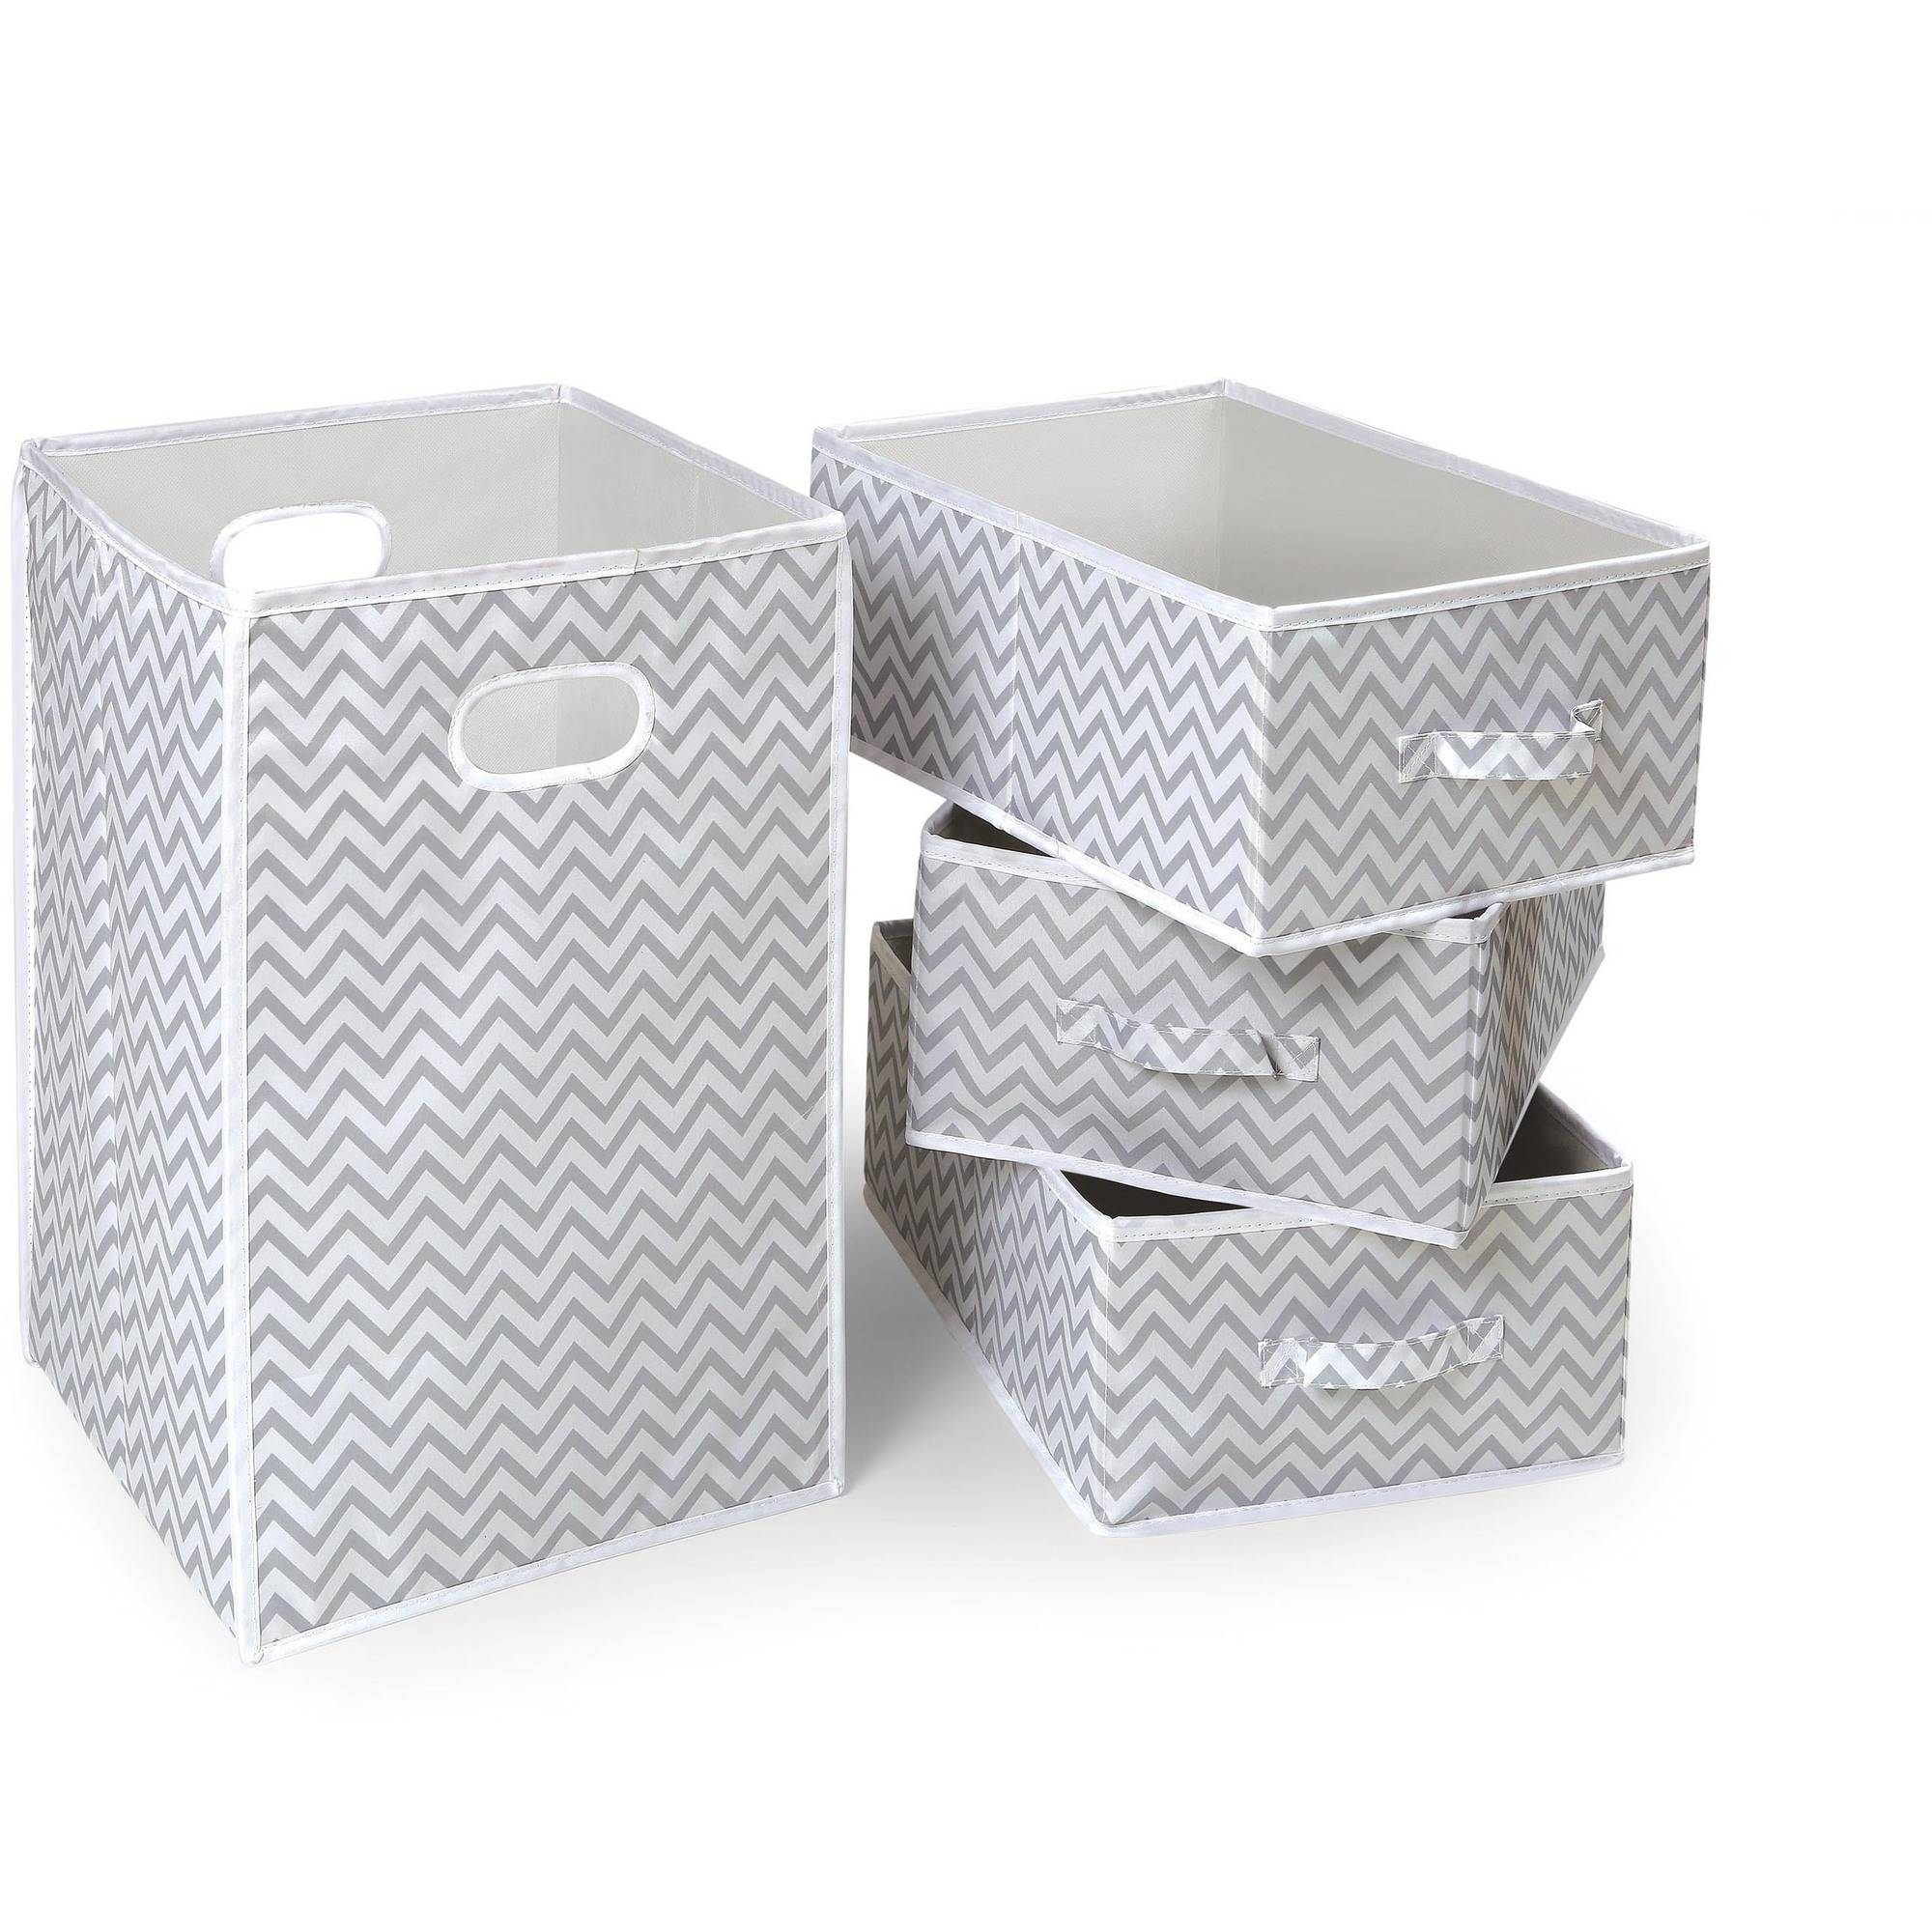 Badger Basket Folding Hamper and 3-Basket Set, Gray Chevron